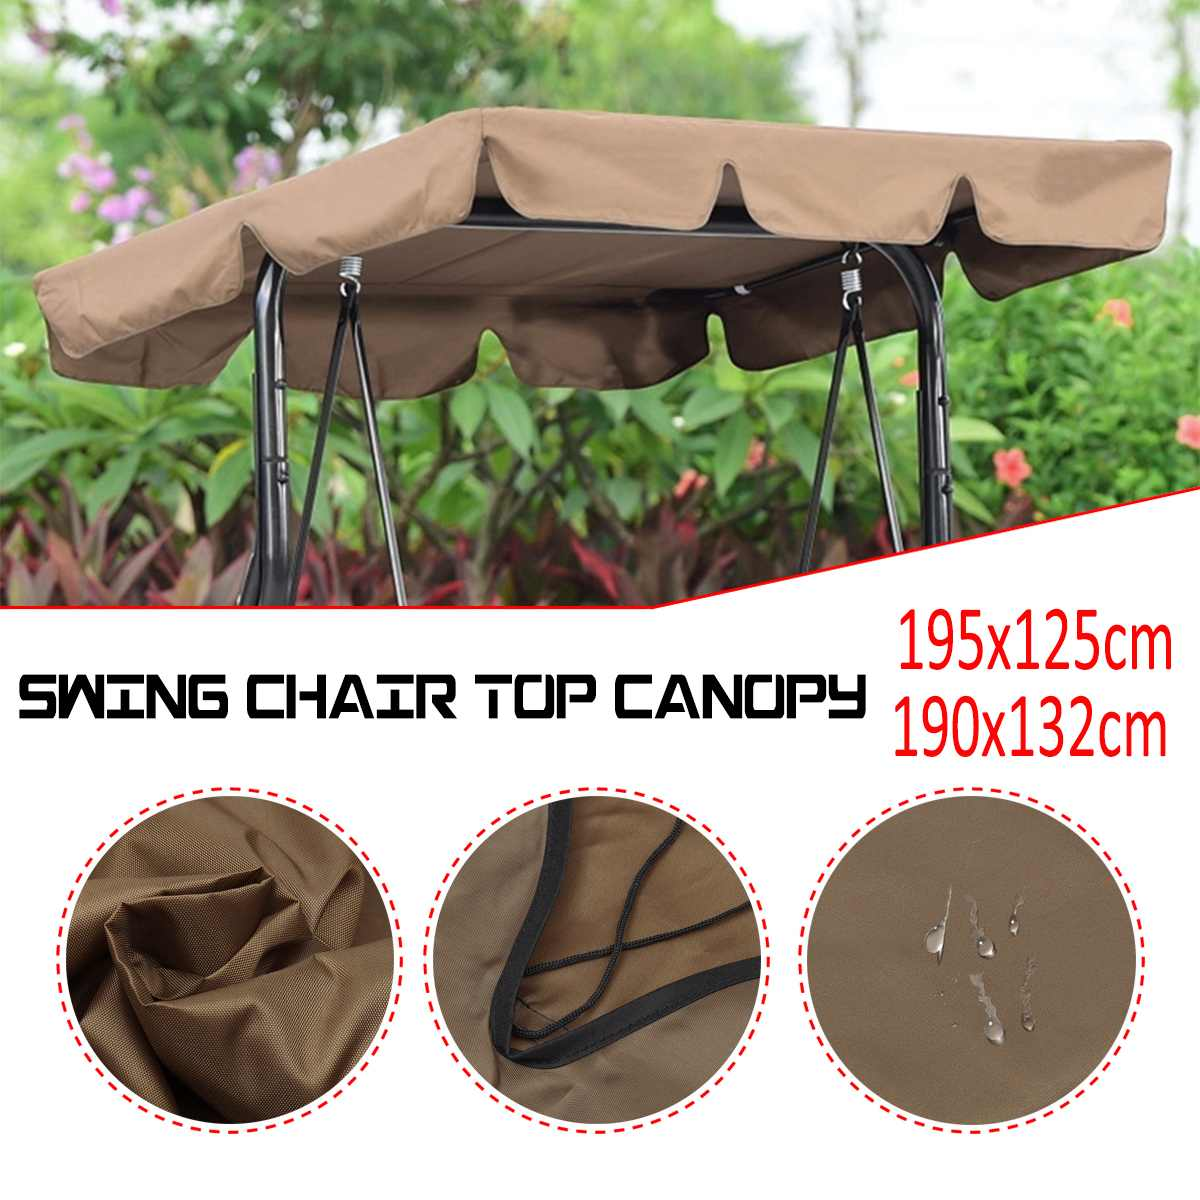 195x125cm Waterproof Swing Chair Top Cover Awning Outdoor